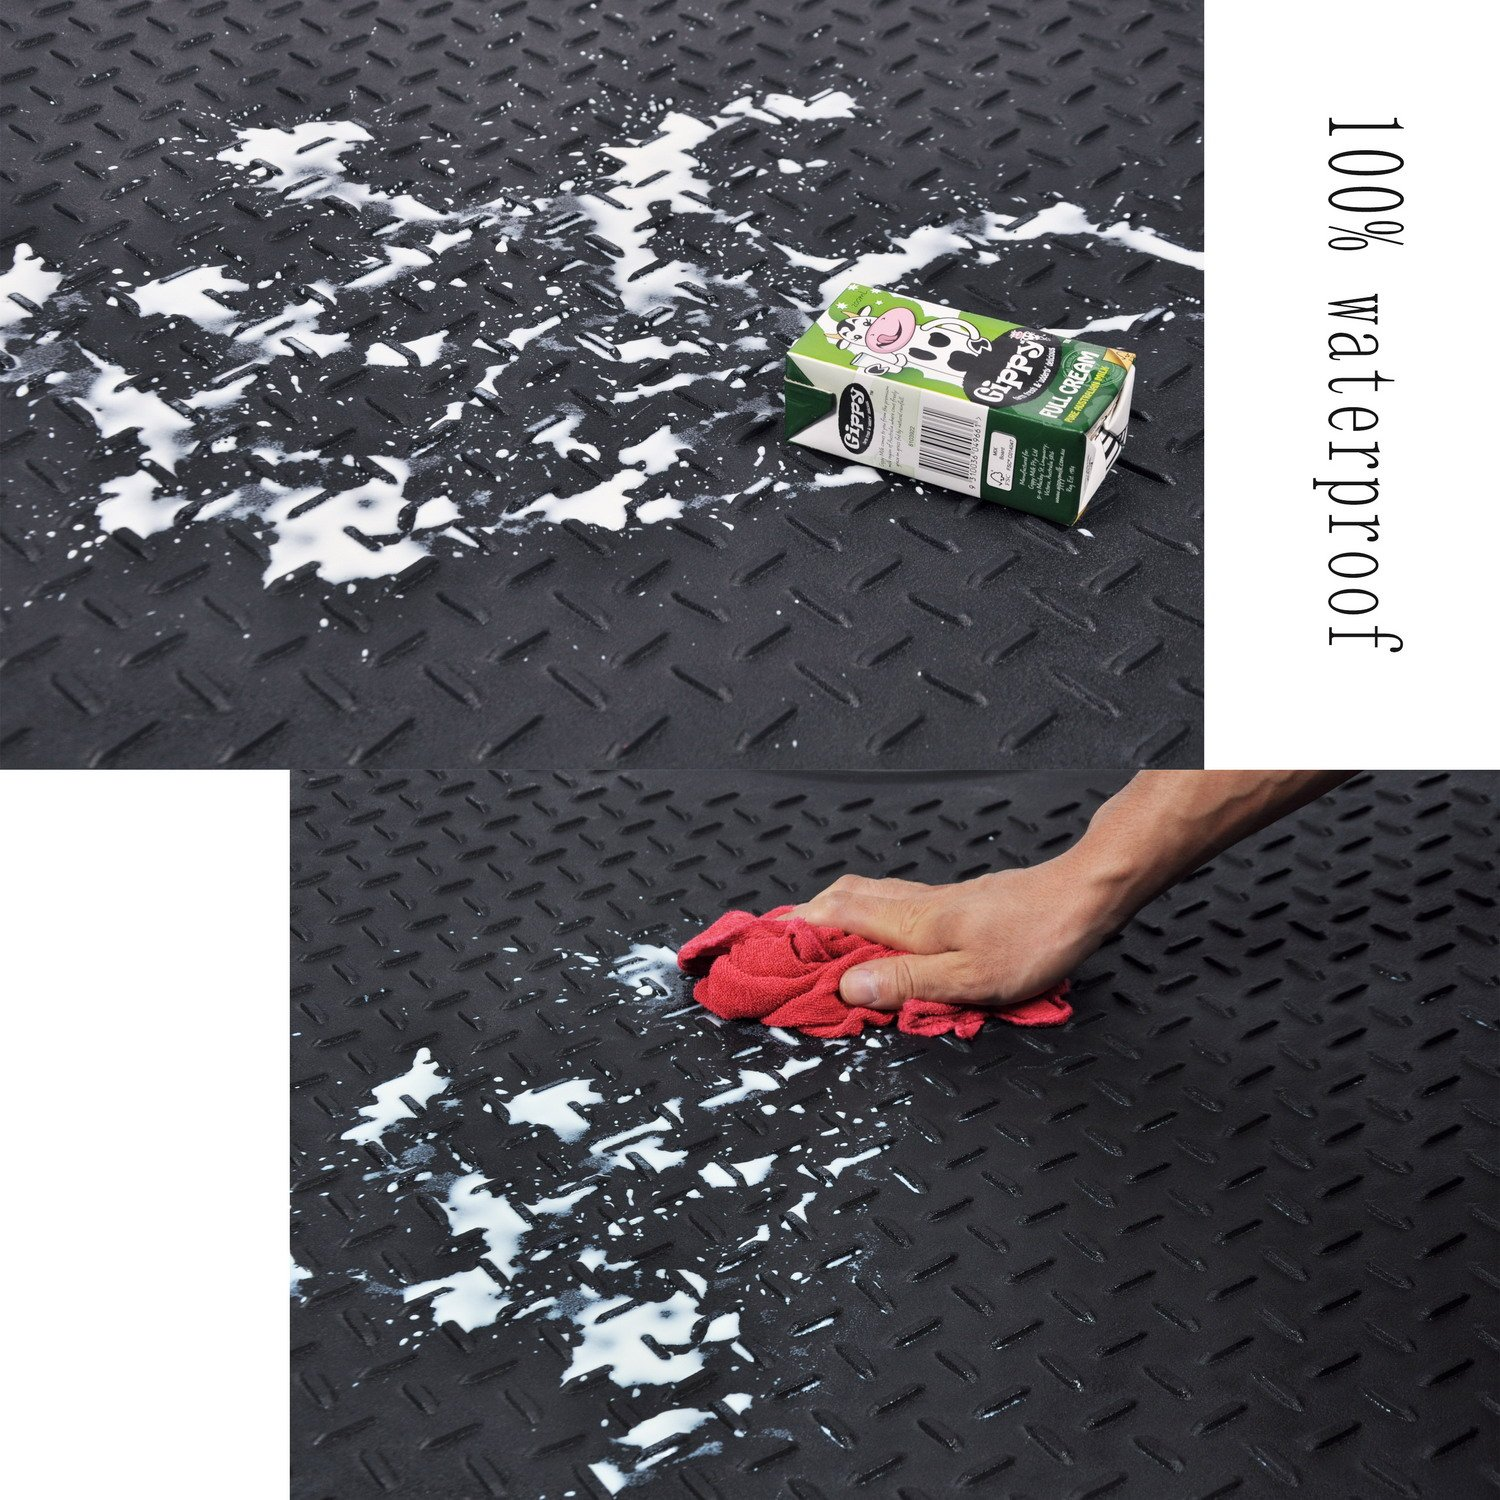 Heavy Duty Rubber Trunk Cargo Liner Floor Mat All Weather Trunk Protection Trimmable to Fit&Durable pvc Rubber Black